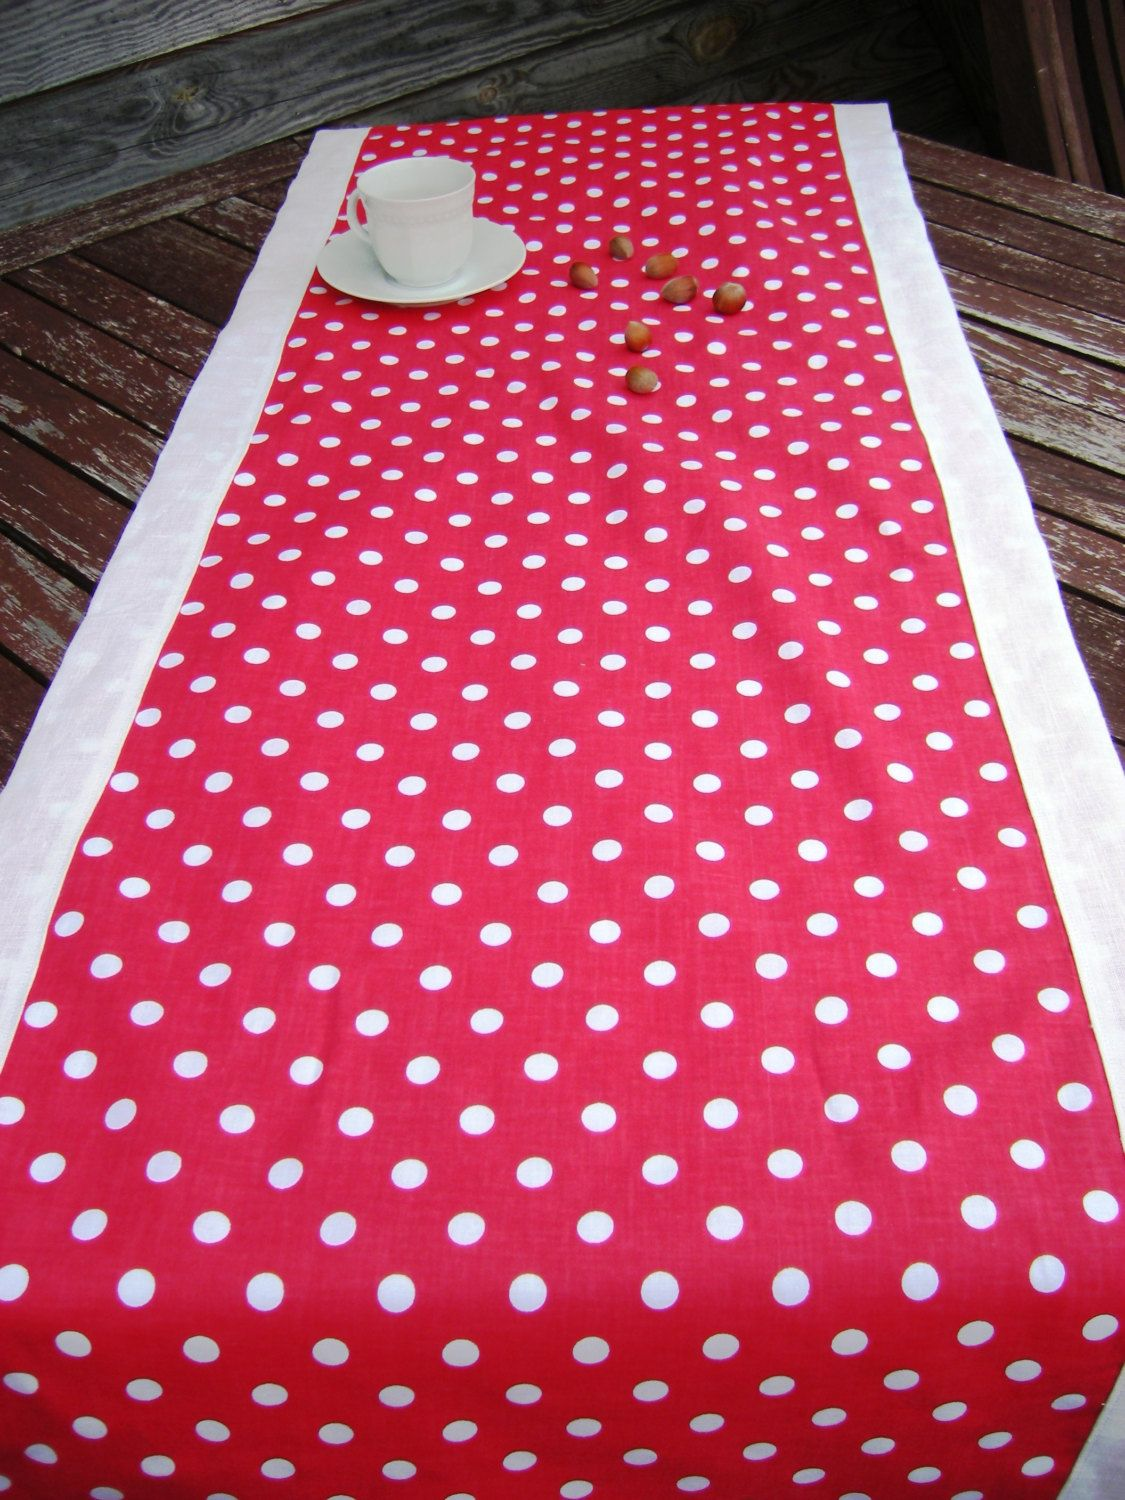 Polka Dot Table Runner, Red White Cotton LinenTablecloth, Handmade Linens,  Dotted Table Top